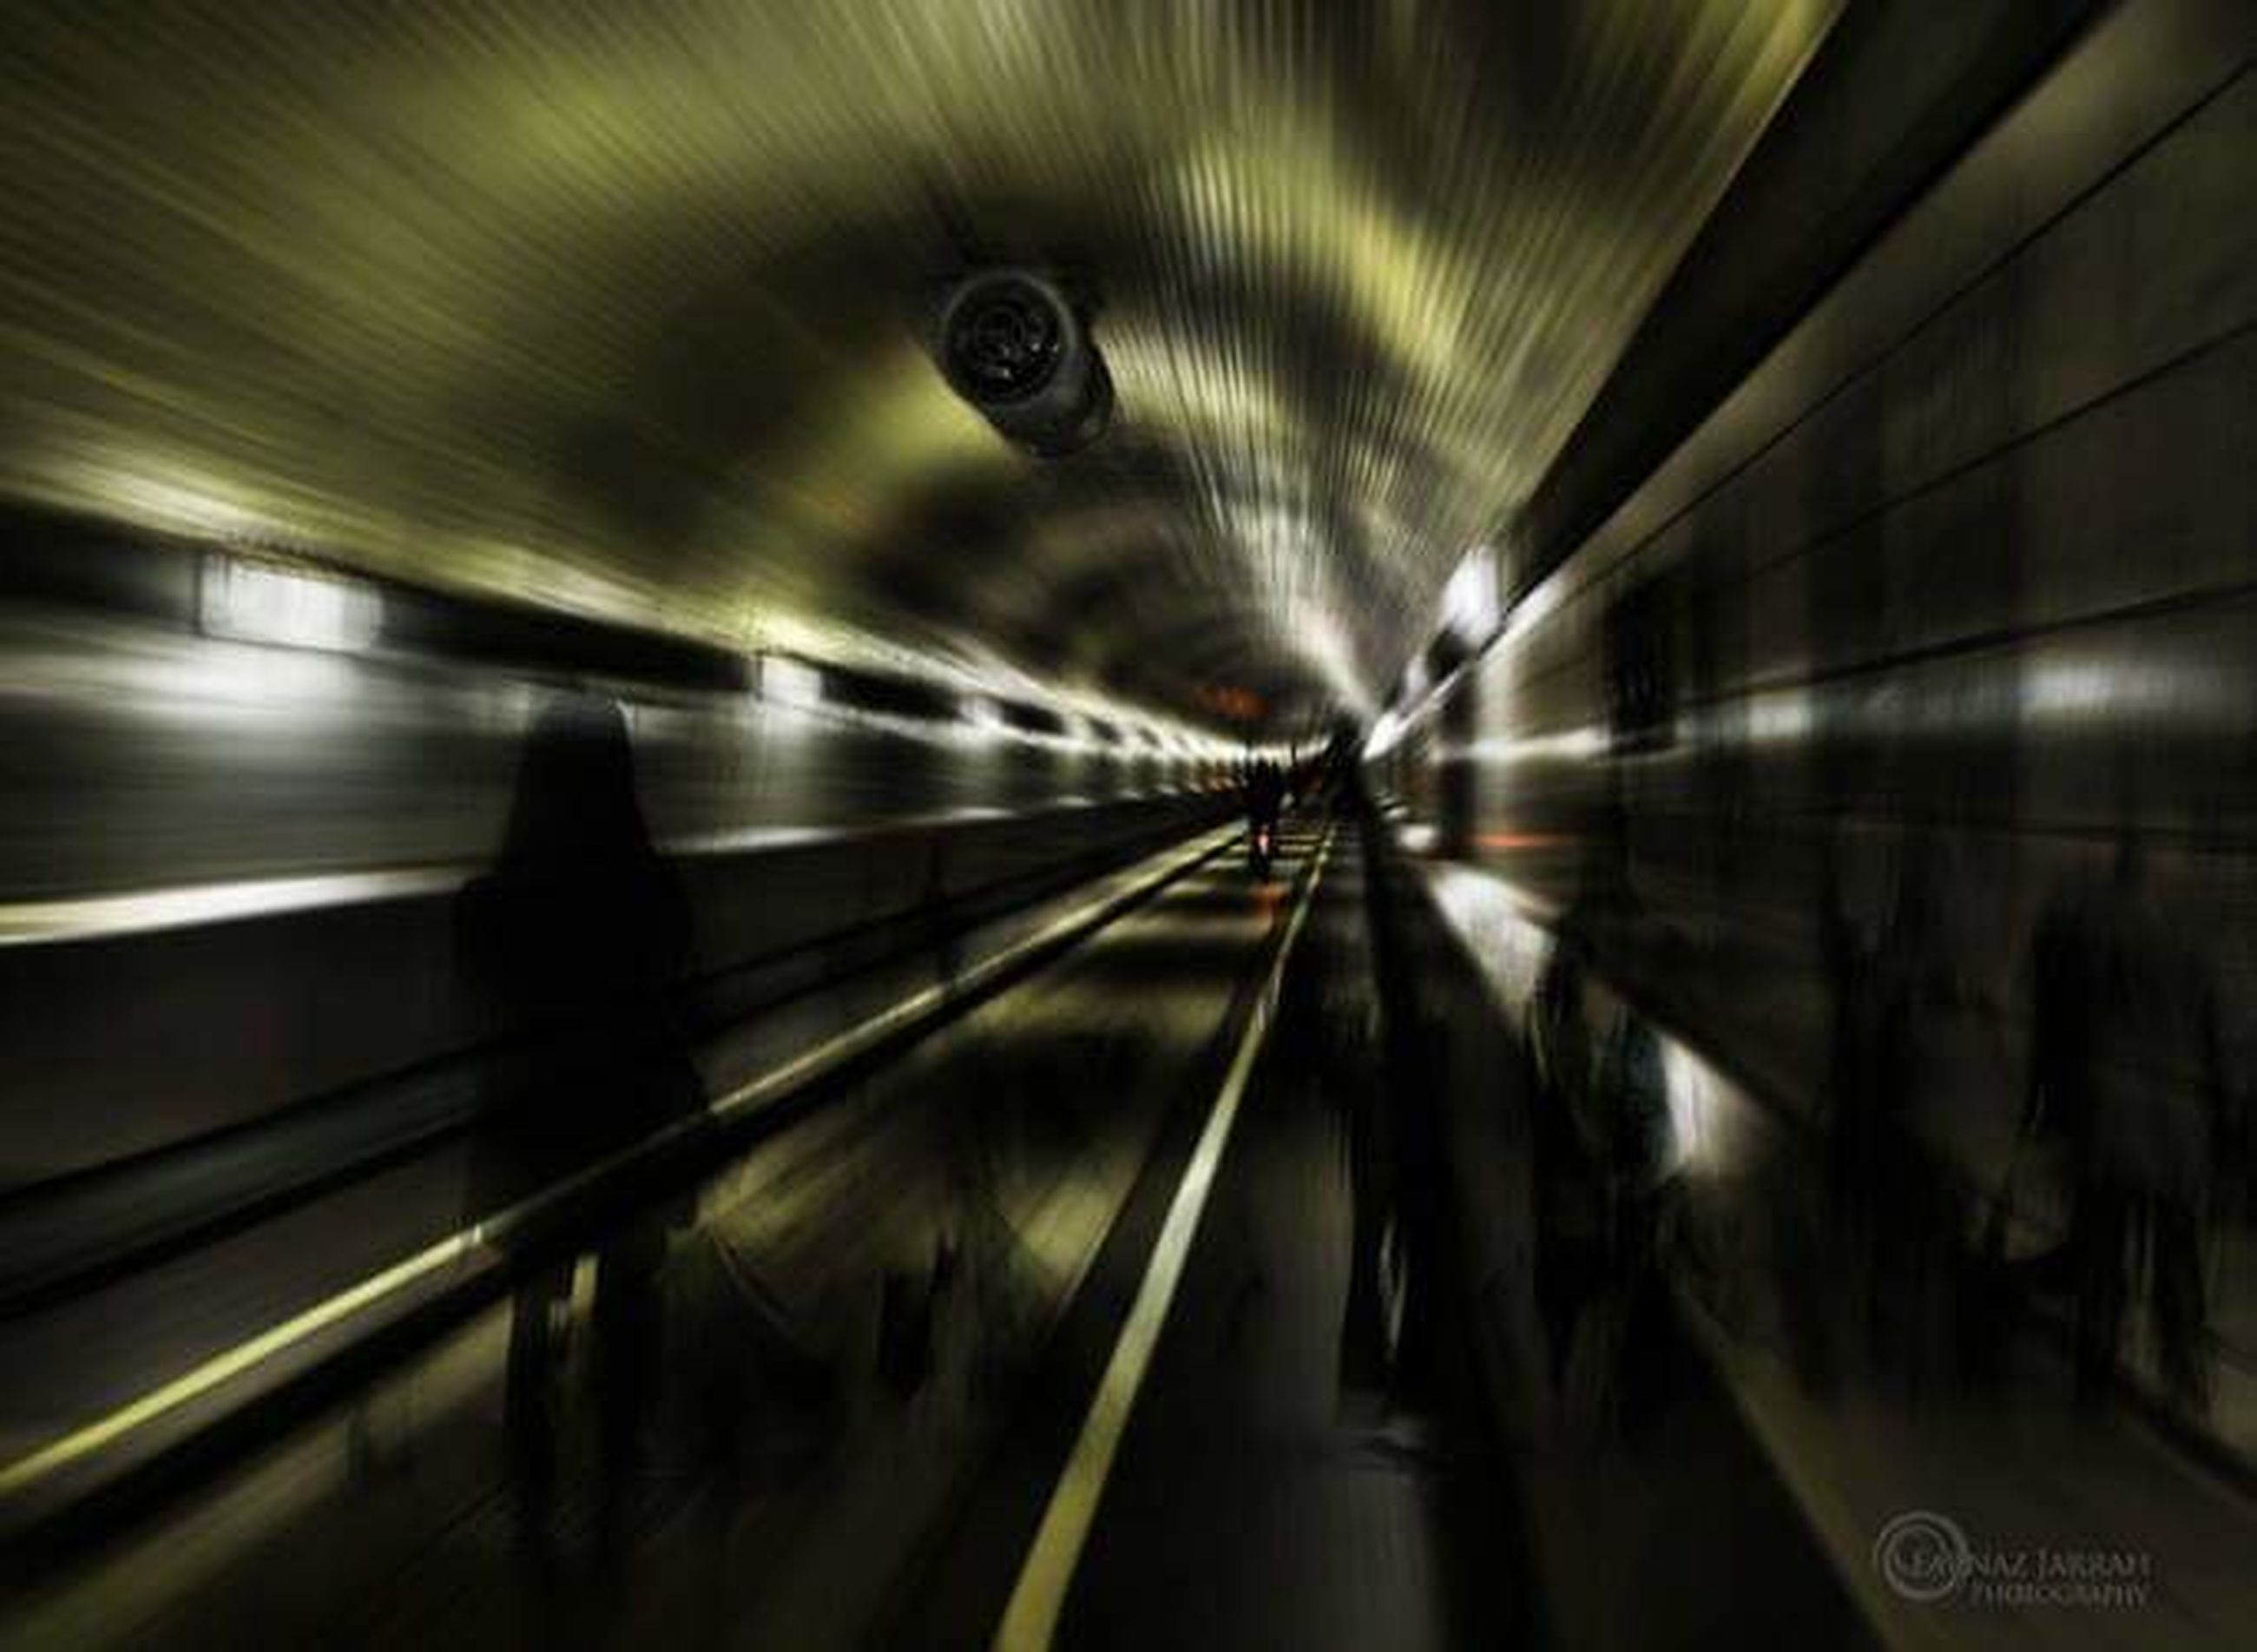 blurred motion, motion, transportation, speed, public transportation, mode of transportation, rail transportation, architecture, long exposure, subway, on the move, subway station, illuminated, subway train, indoors, travel, city, tunnel, train, direction, abstract, arrival